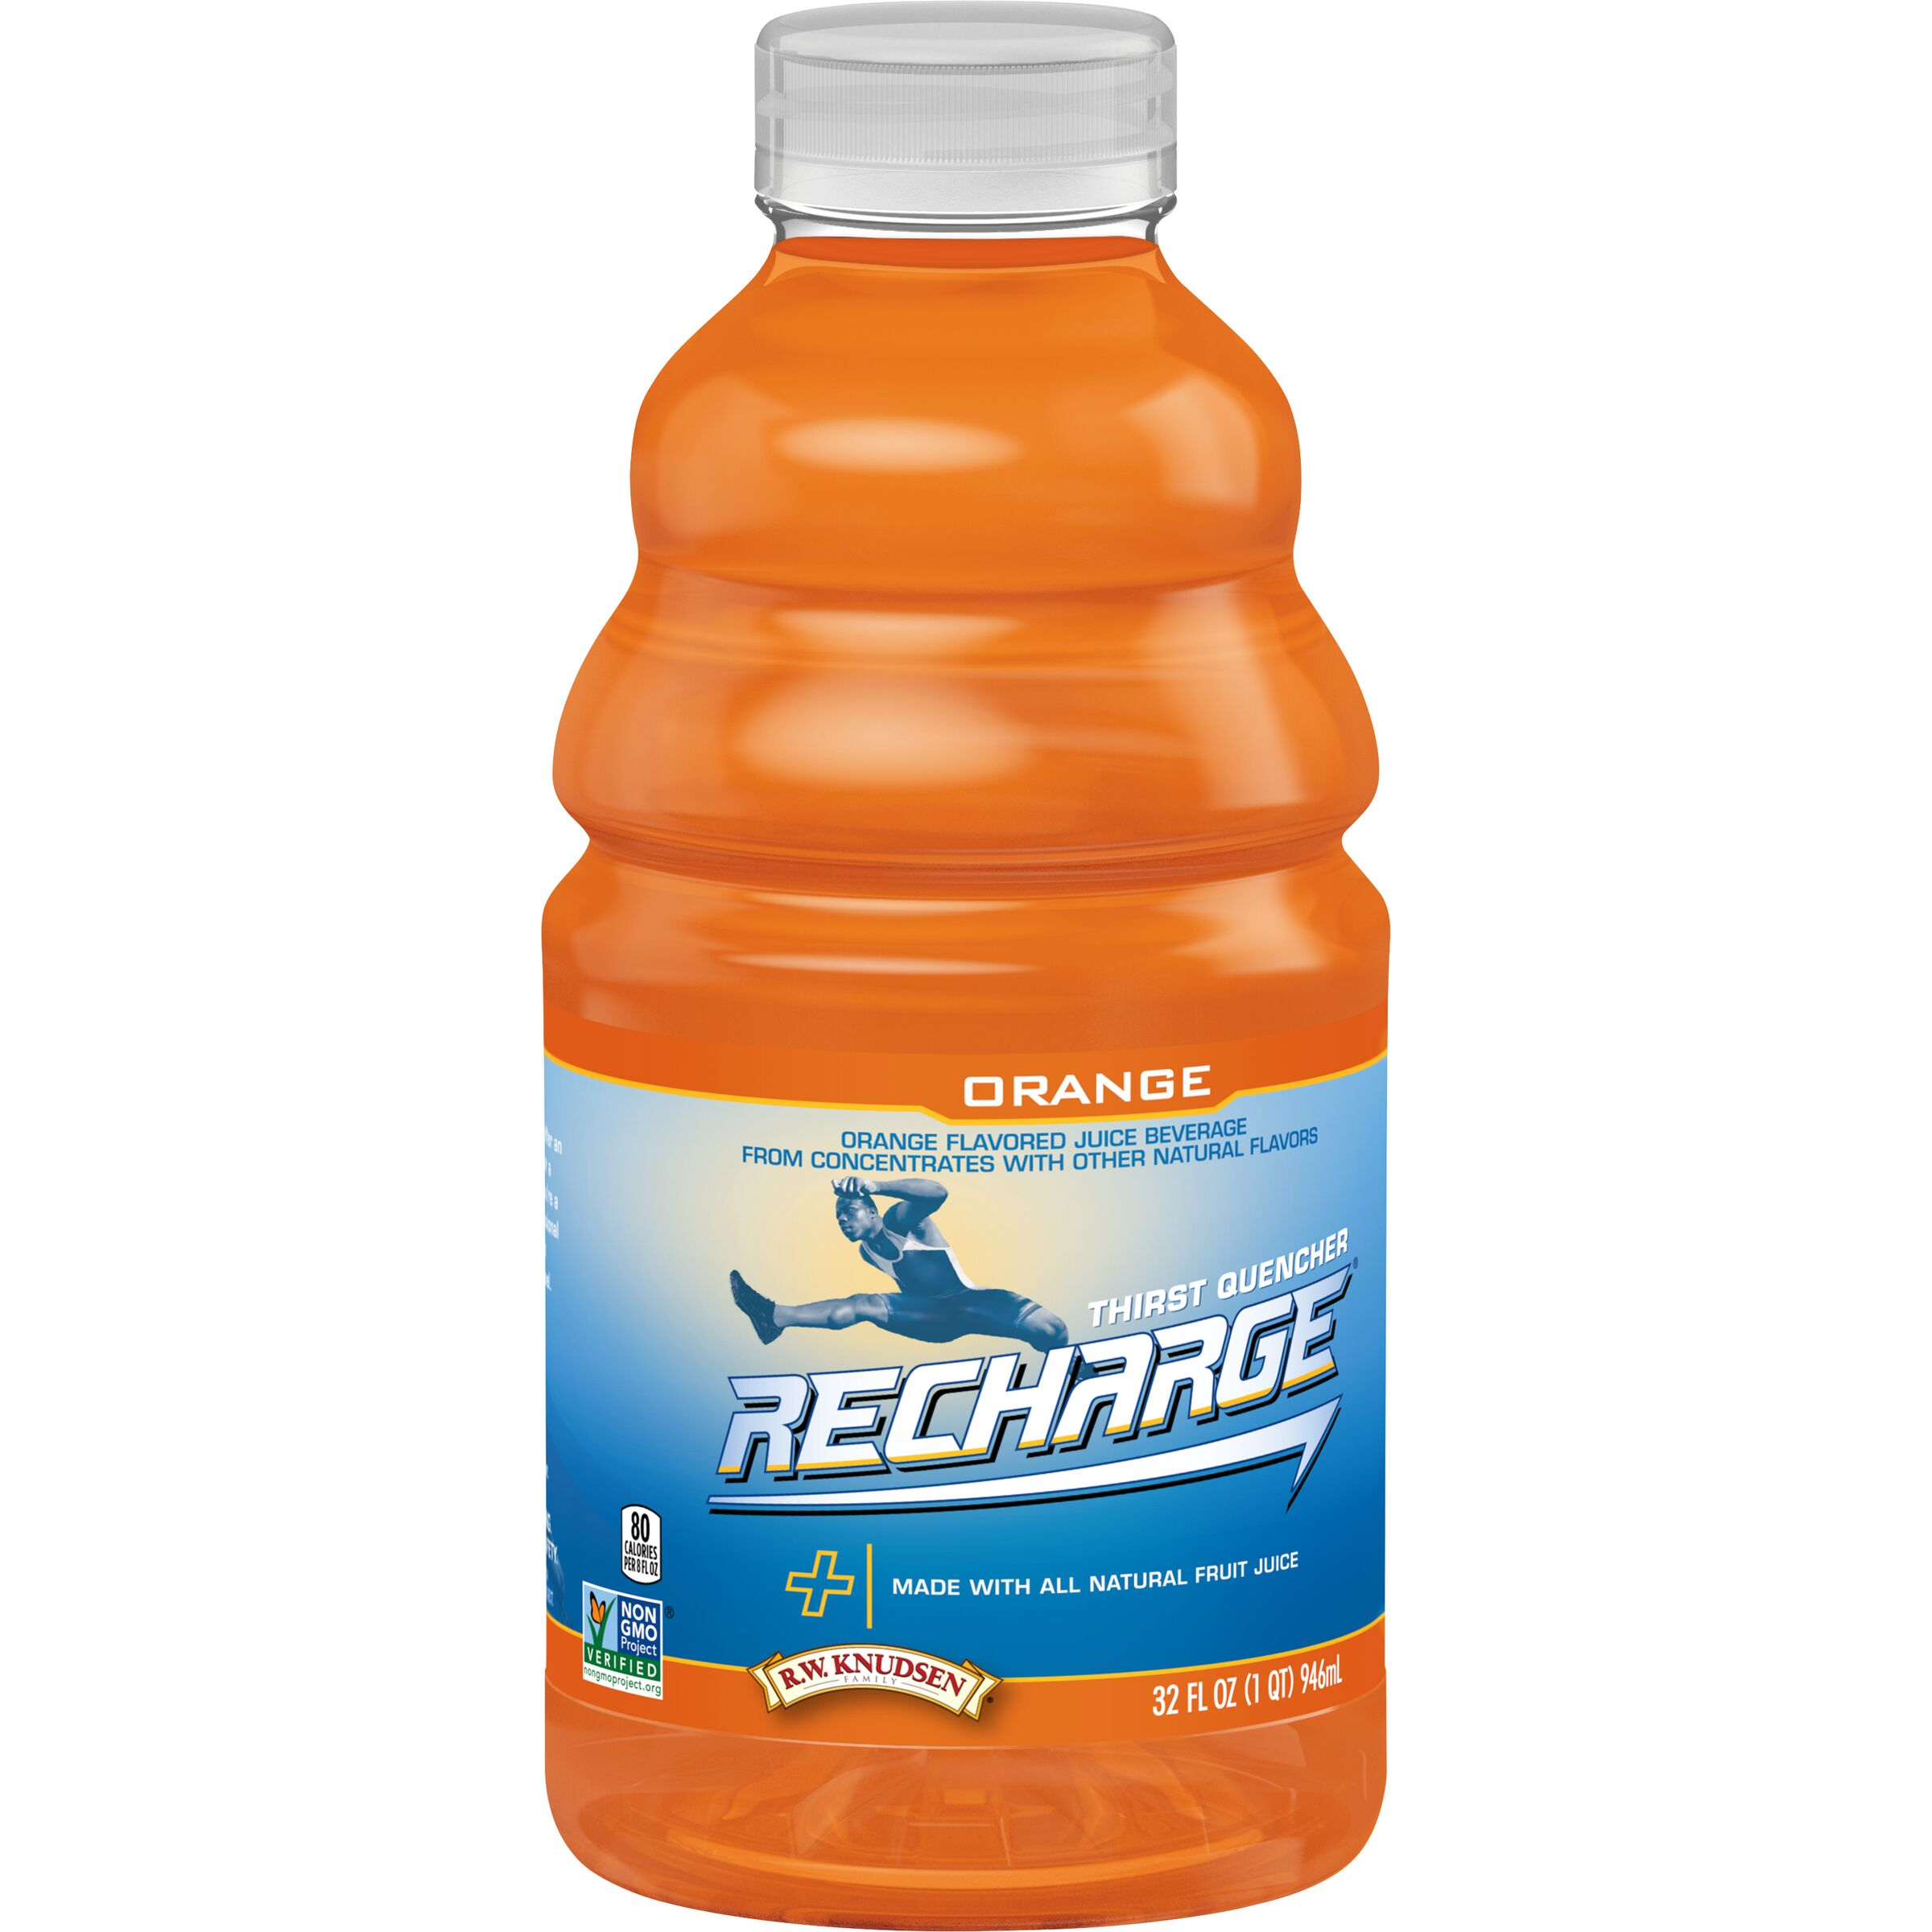 R.W. Knudsen Family Recharge Orange Sports Drink